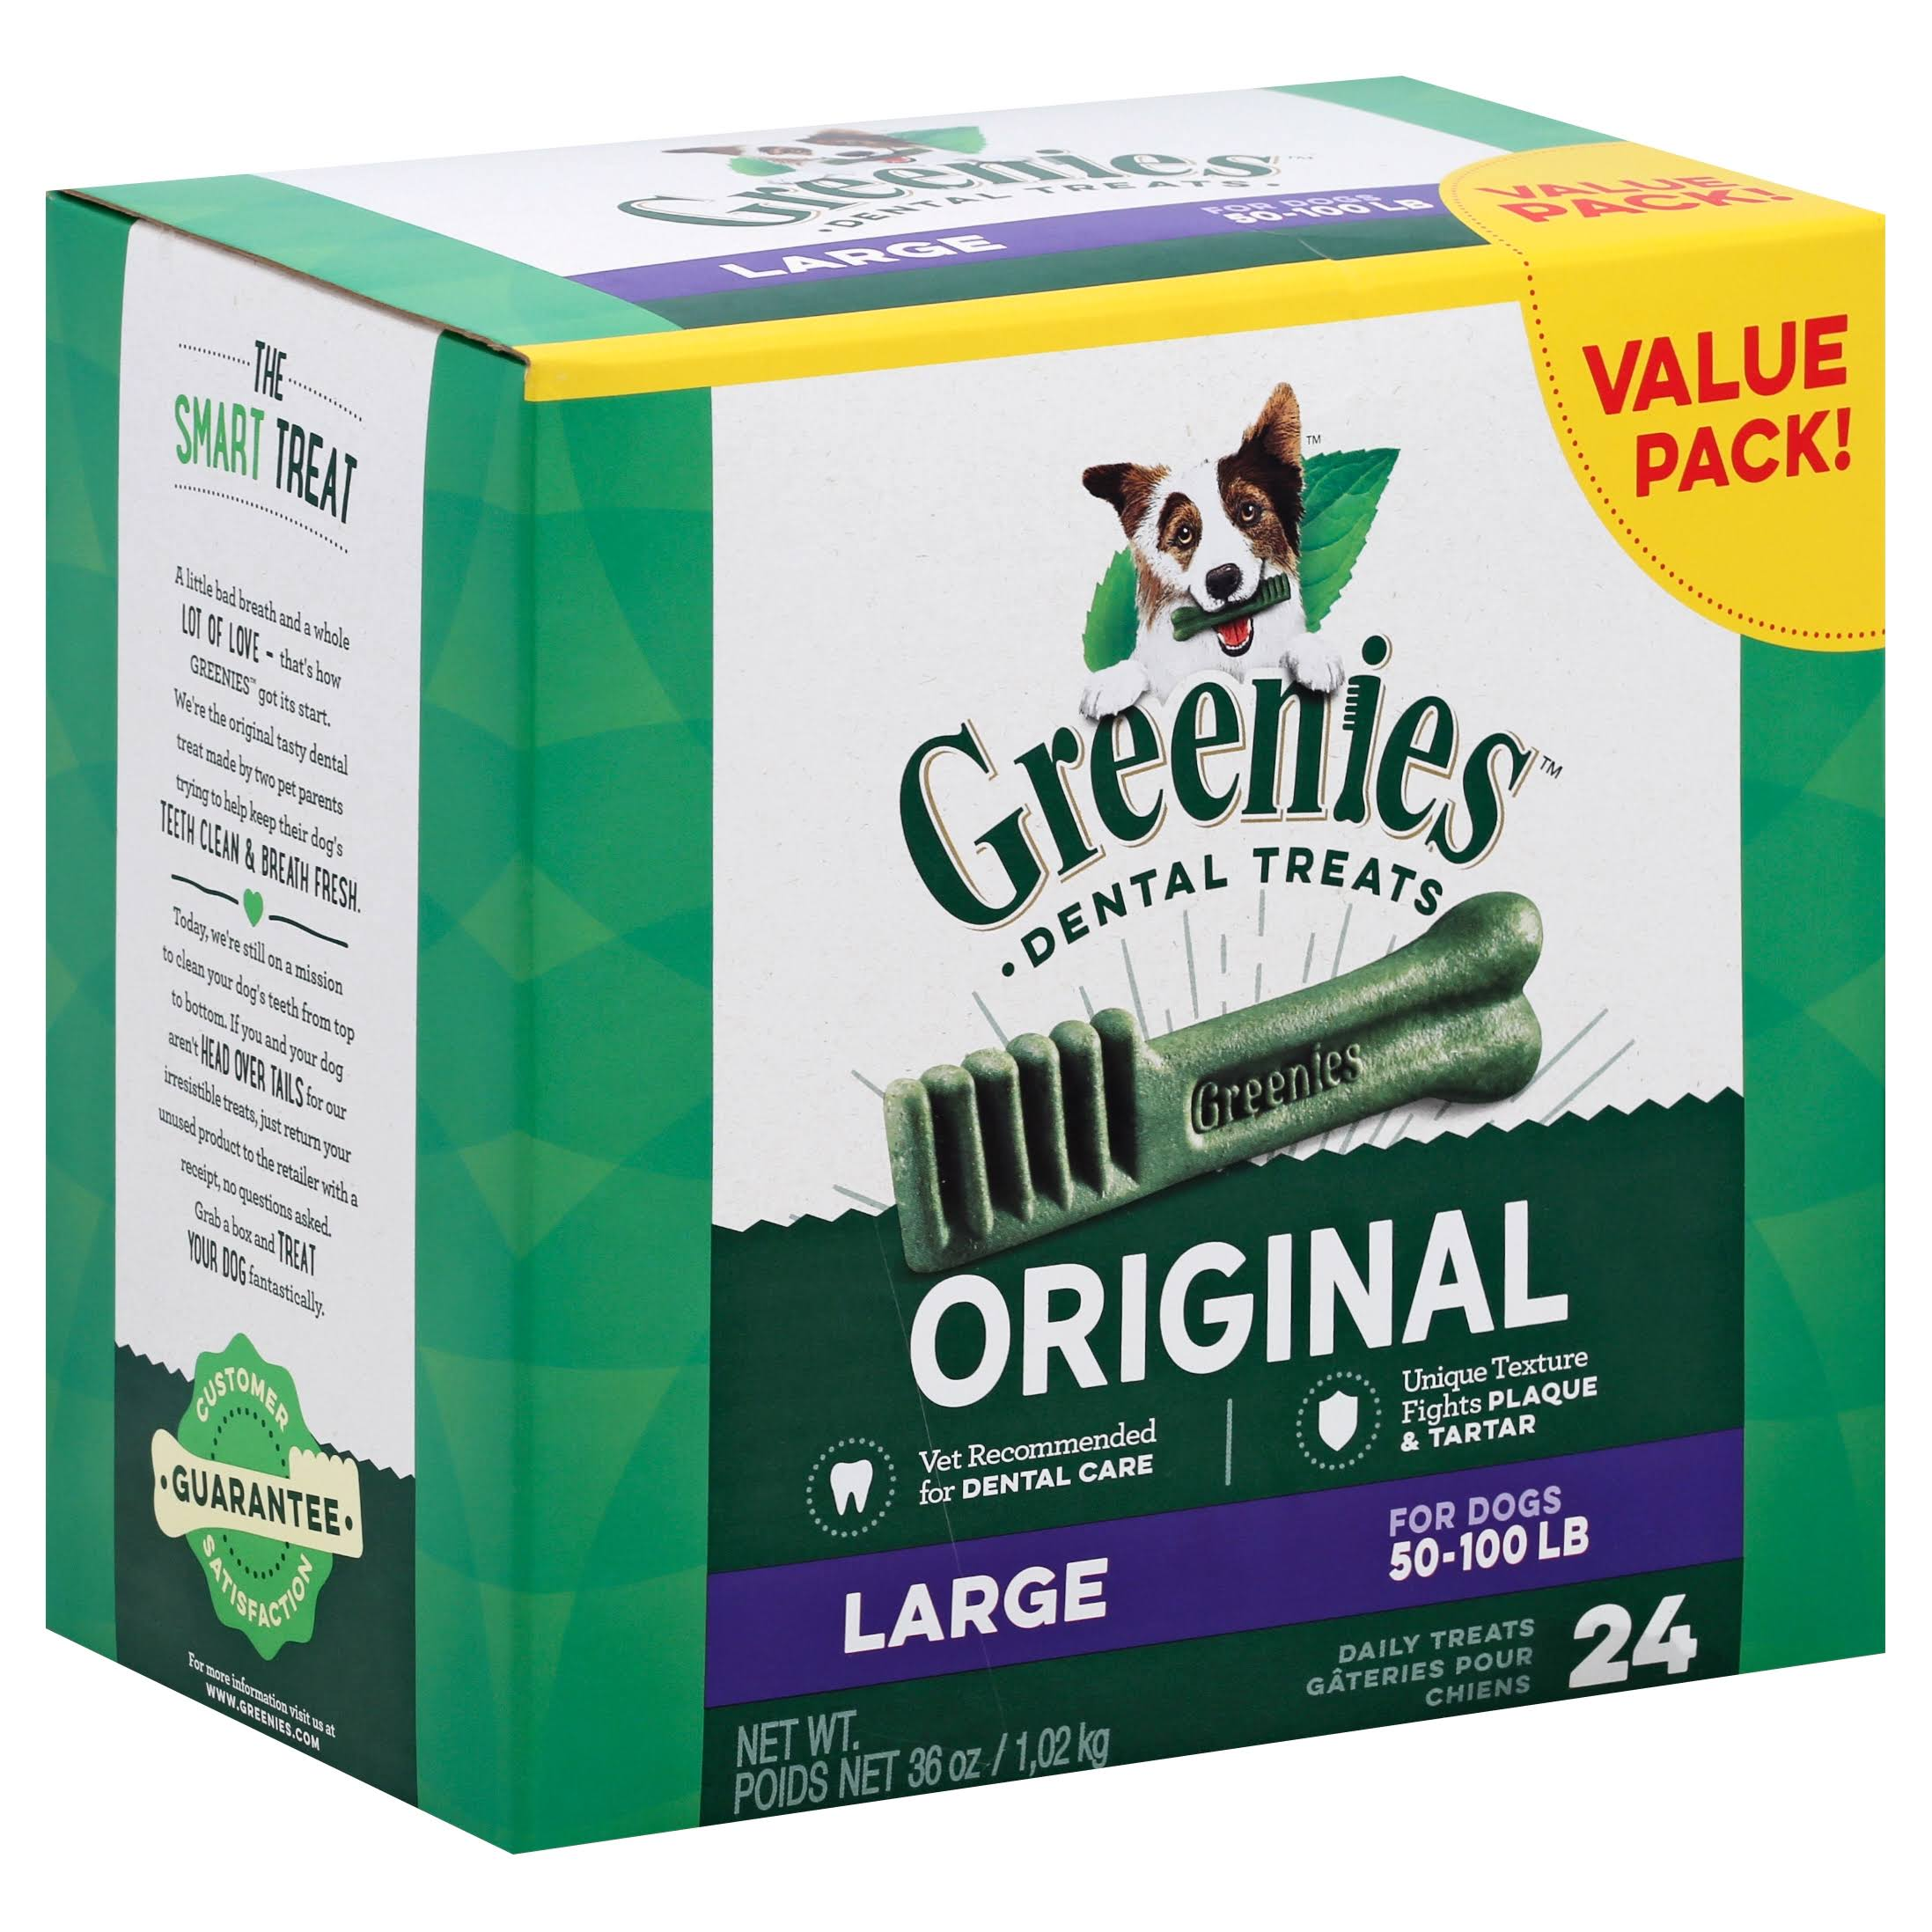 Greenies Dog Dental Chew Treats - Large, 36oz, 24ct